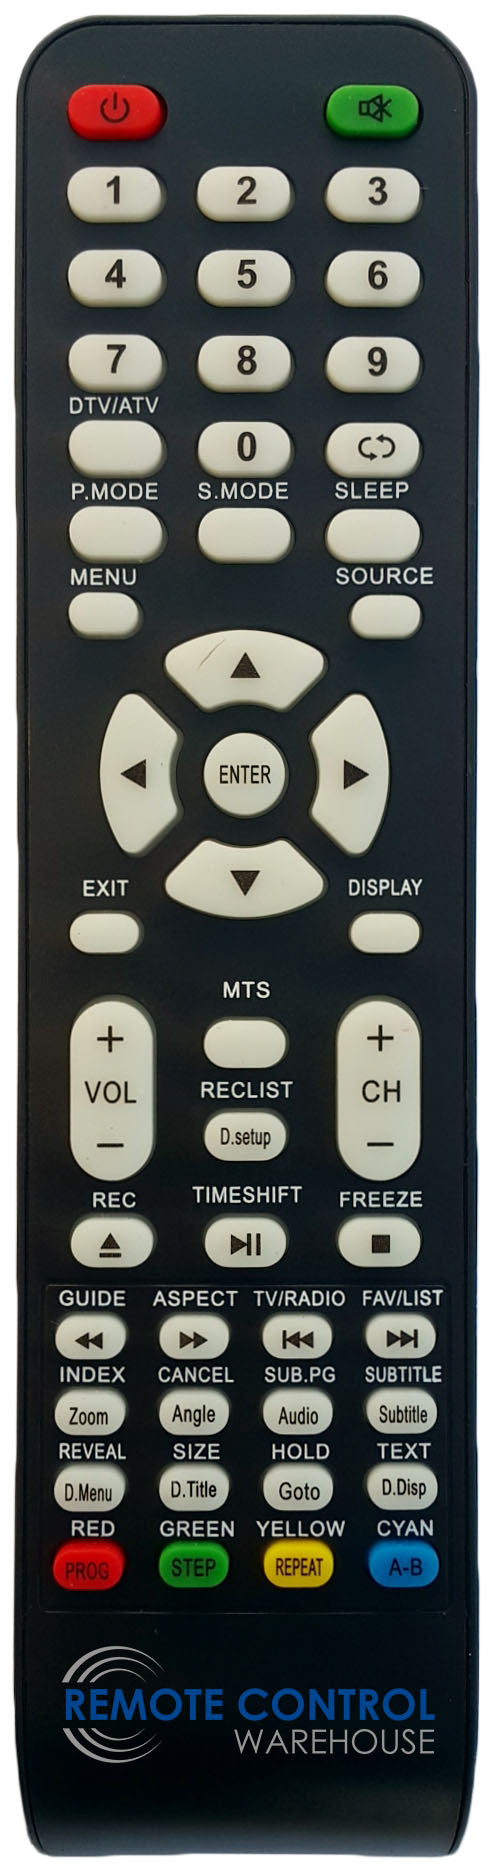 VEON REMOTE CONTROL SUITS - VN4019LEDDVD LED TV